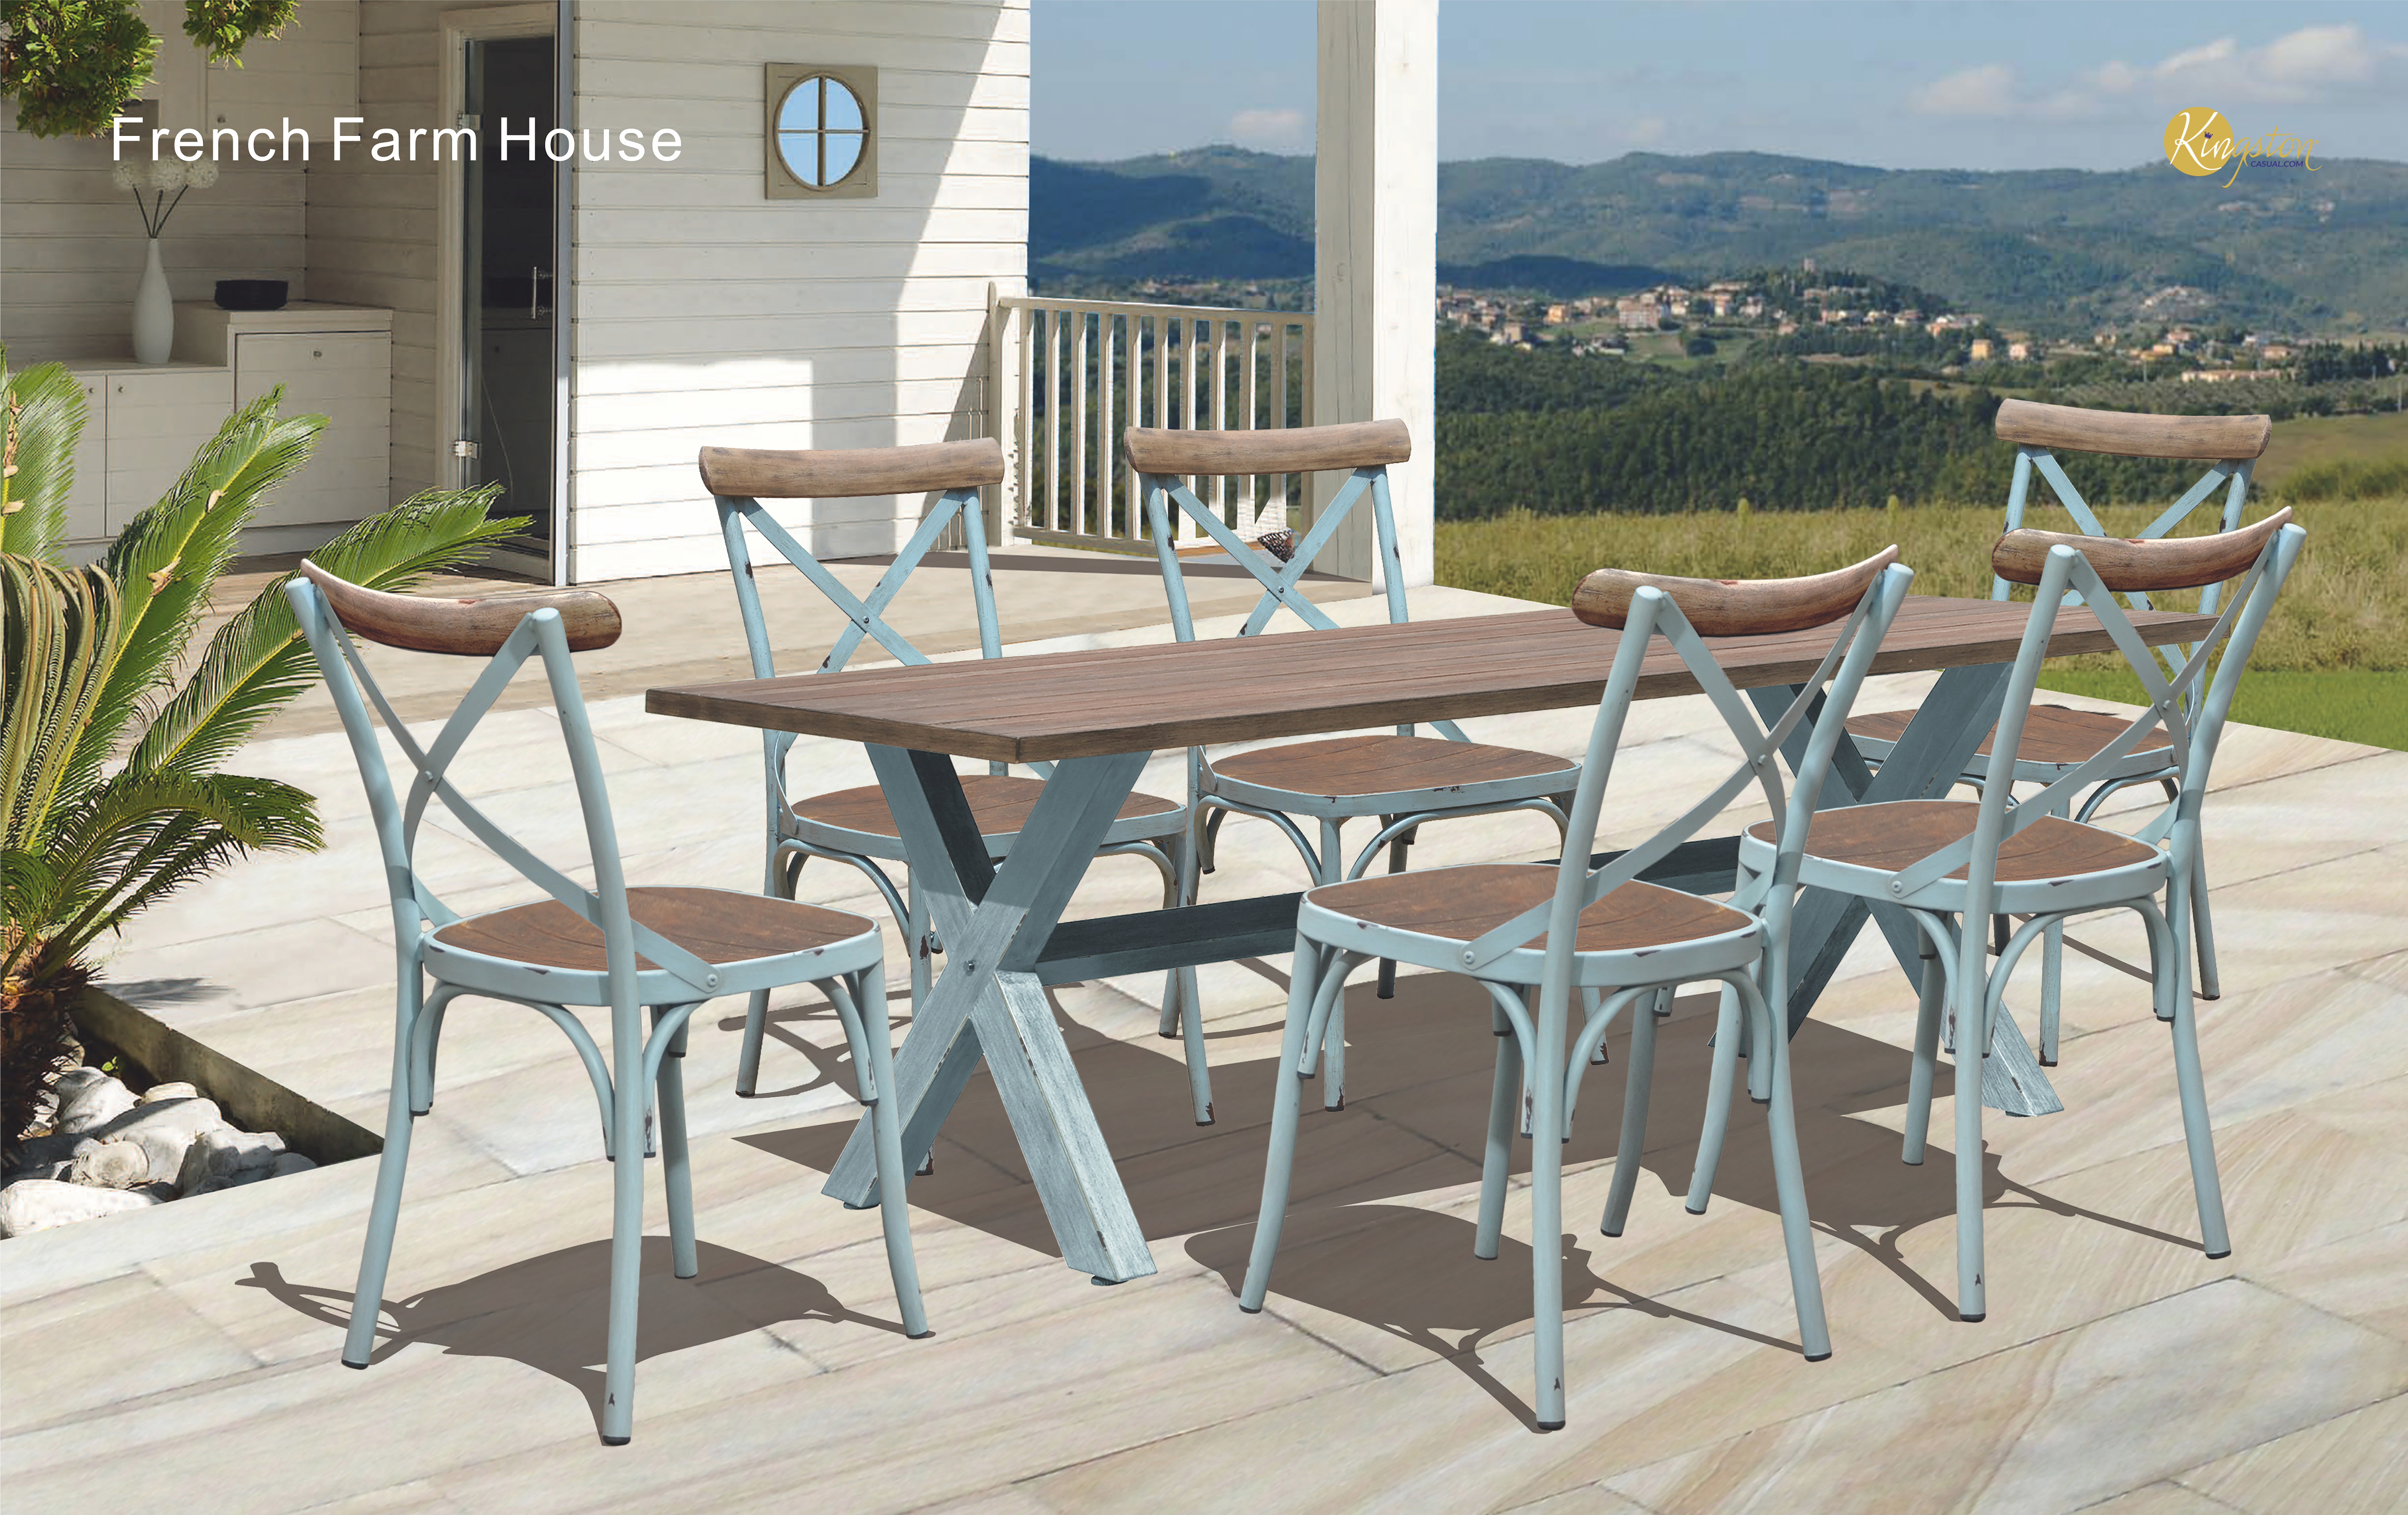 Kingston Casual Outdoor Furniture French Farm House